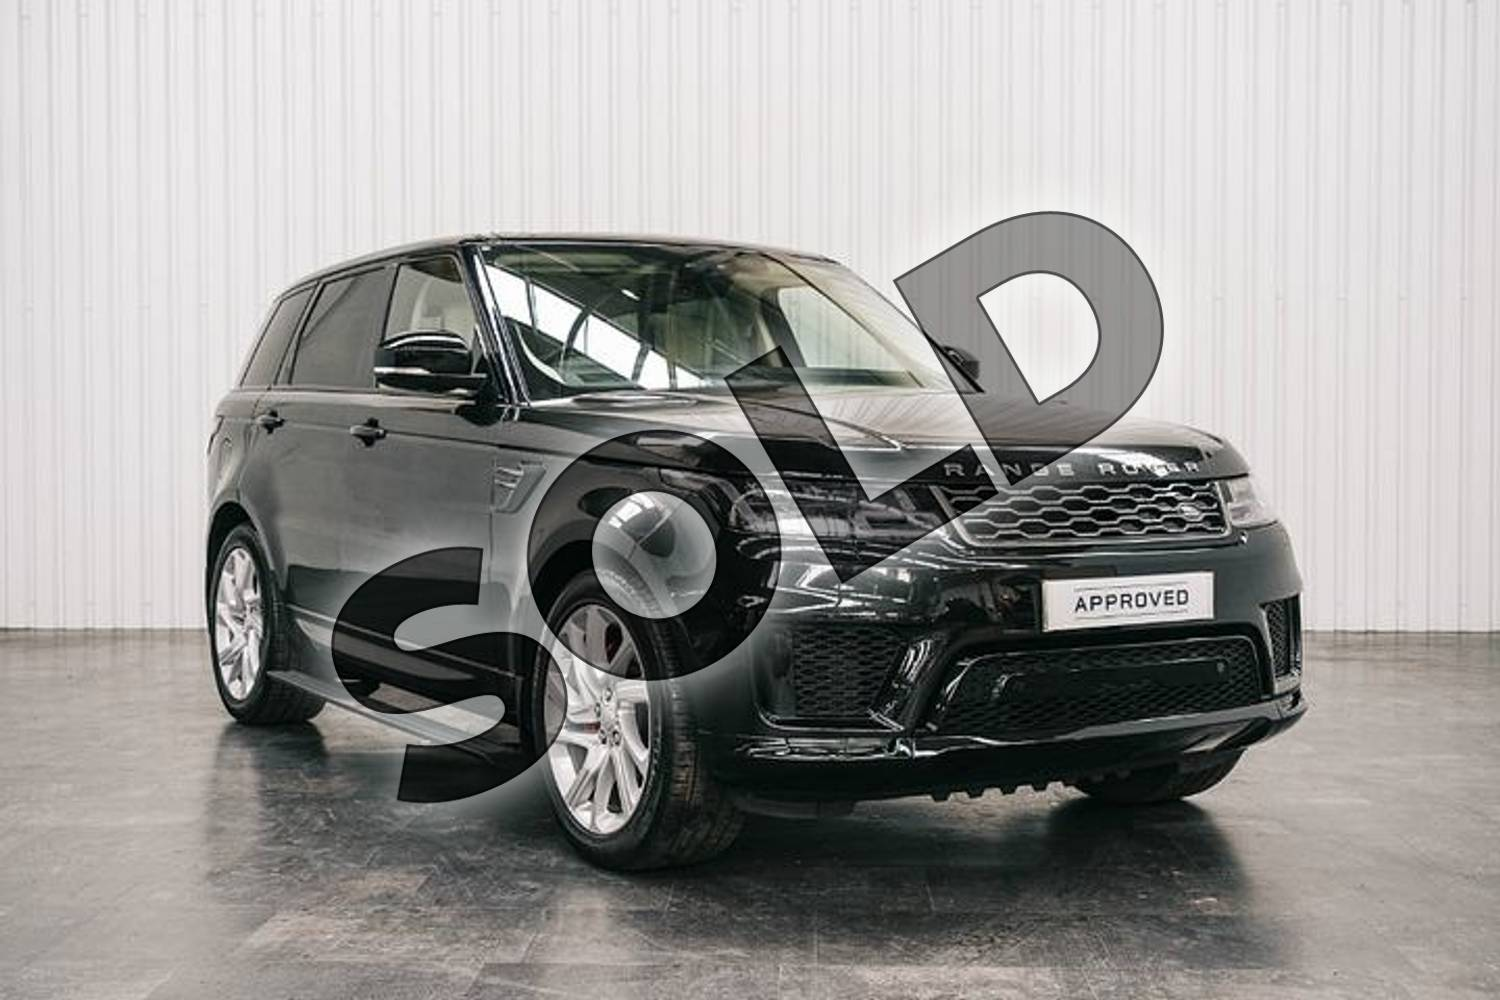 Range Rover Sport 2 0 P400e Hse Dynamic 5dr Auto For Sale At